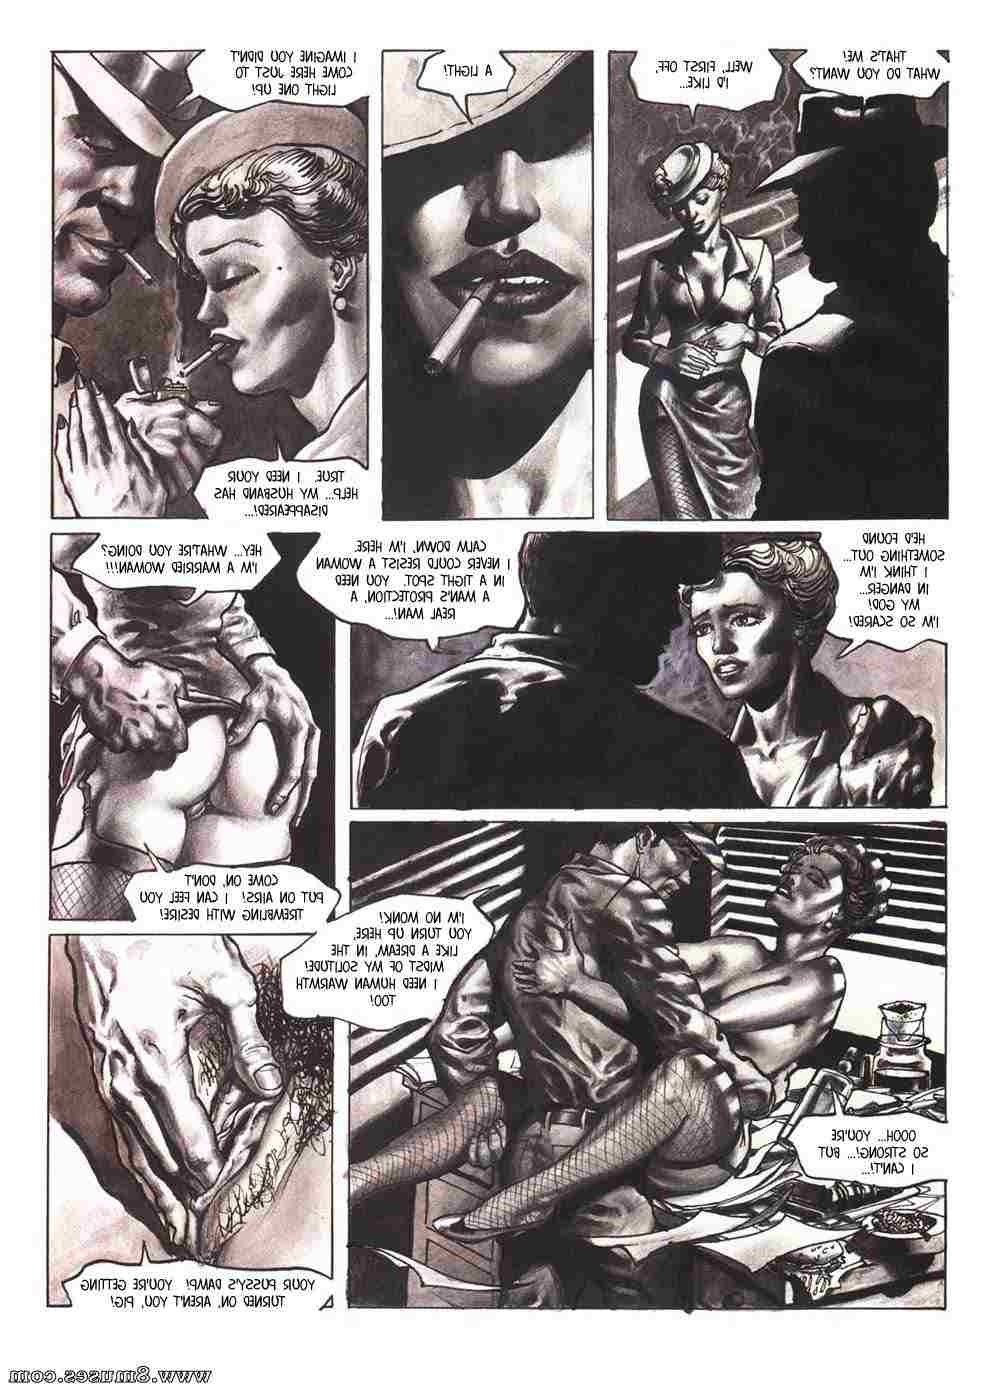 Various-Authors/Starzo/Mike-Mercury Mike_Mercury__8muses_-_Sex_and_Porn_Comics_3.jpg